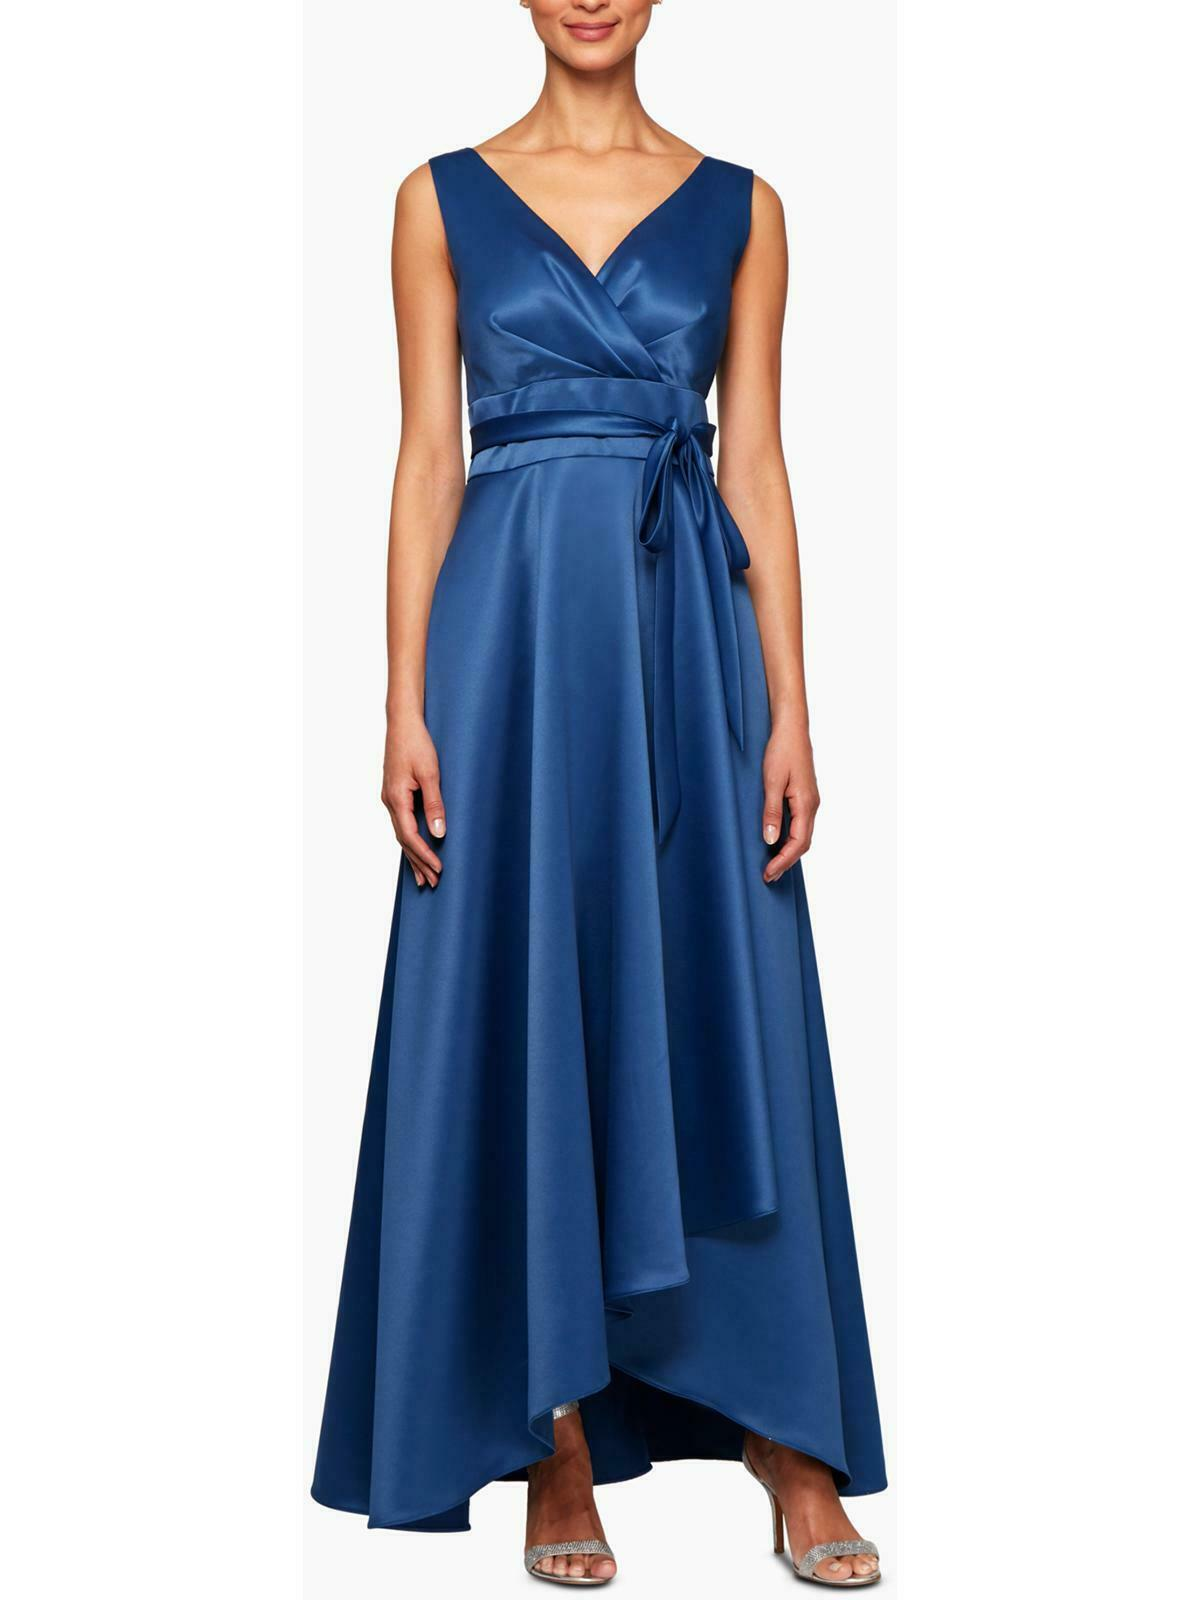 ALEX EVENINGS 12P, 14P Wedgewood Blue V-neck Wrap Gown NWT